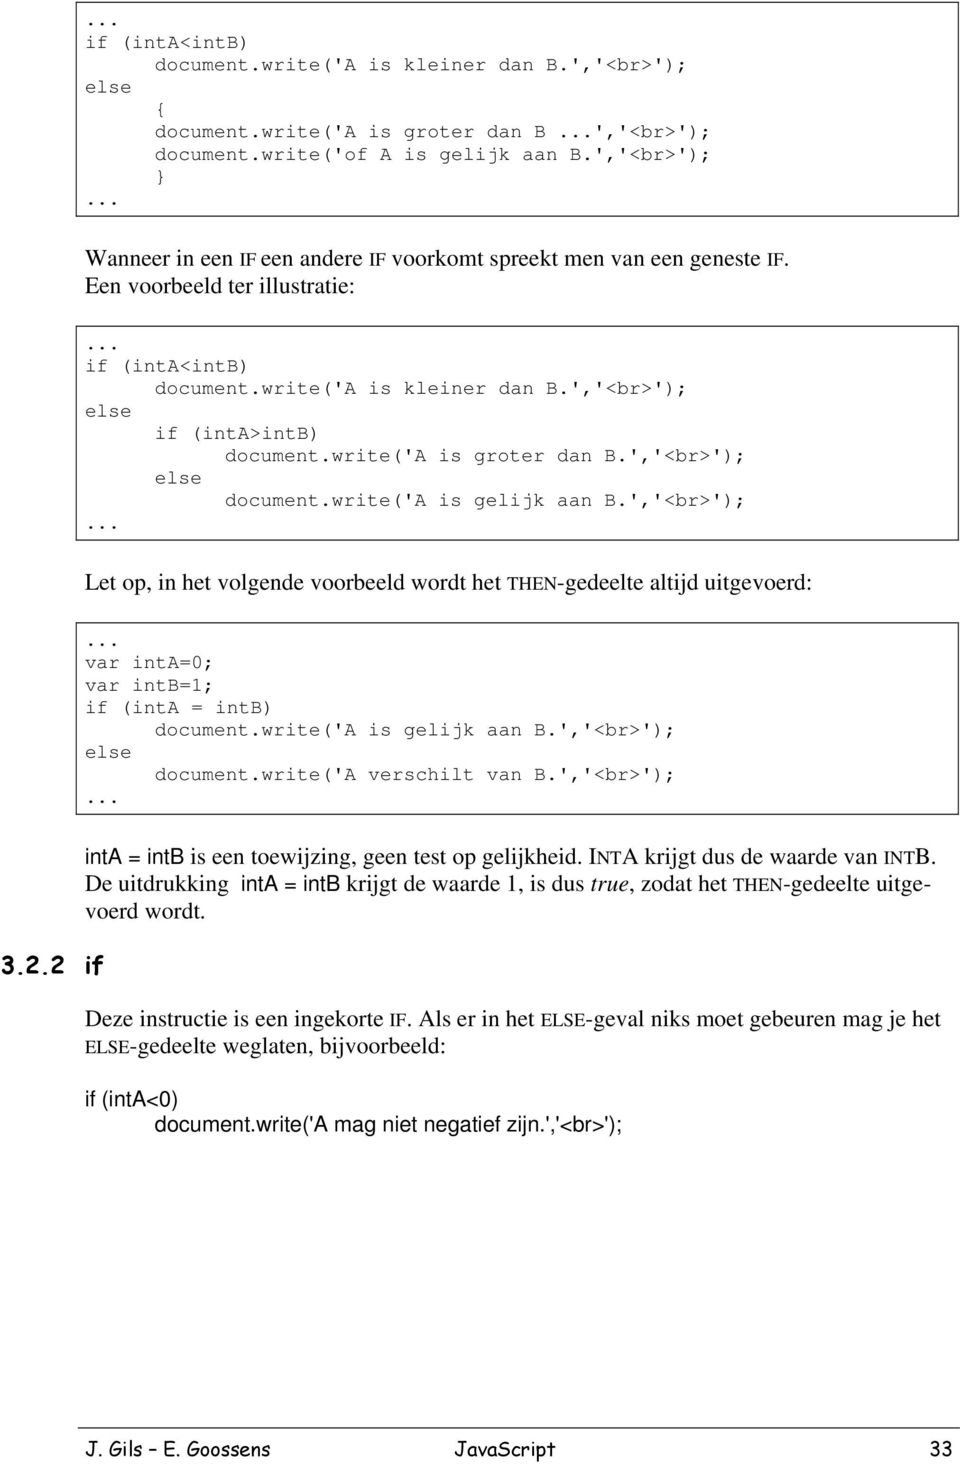 ','<br>'); else if (inta>intb) document.write('a is groter dan B.','<br>'); else document.write('a is gelijk aan B.